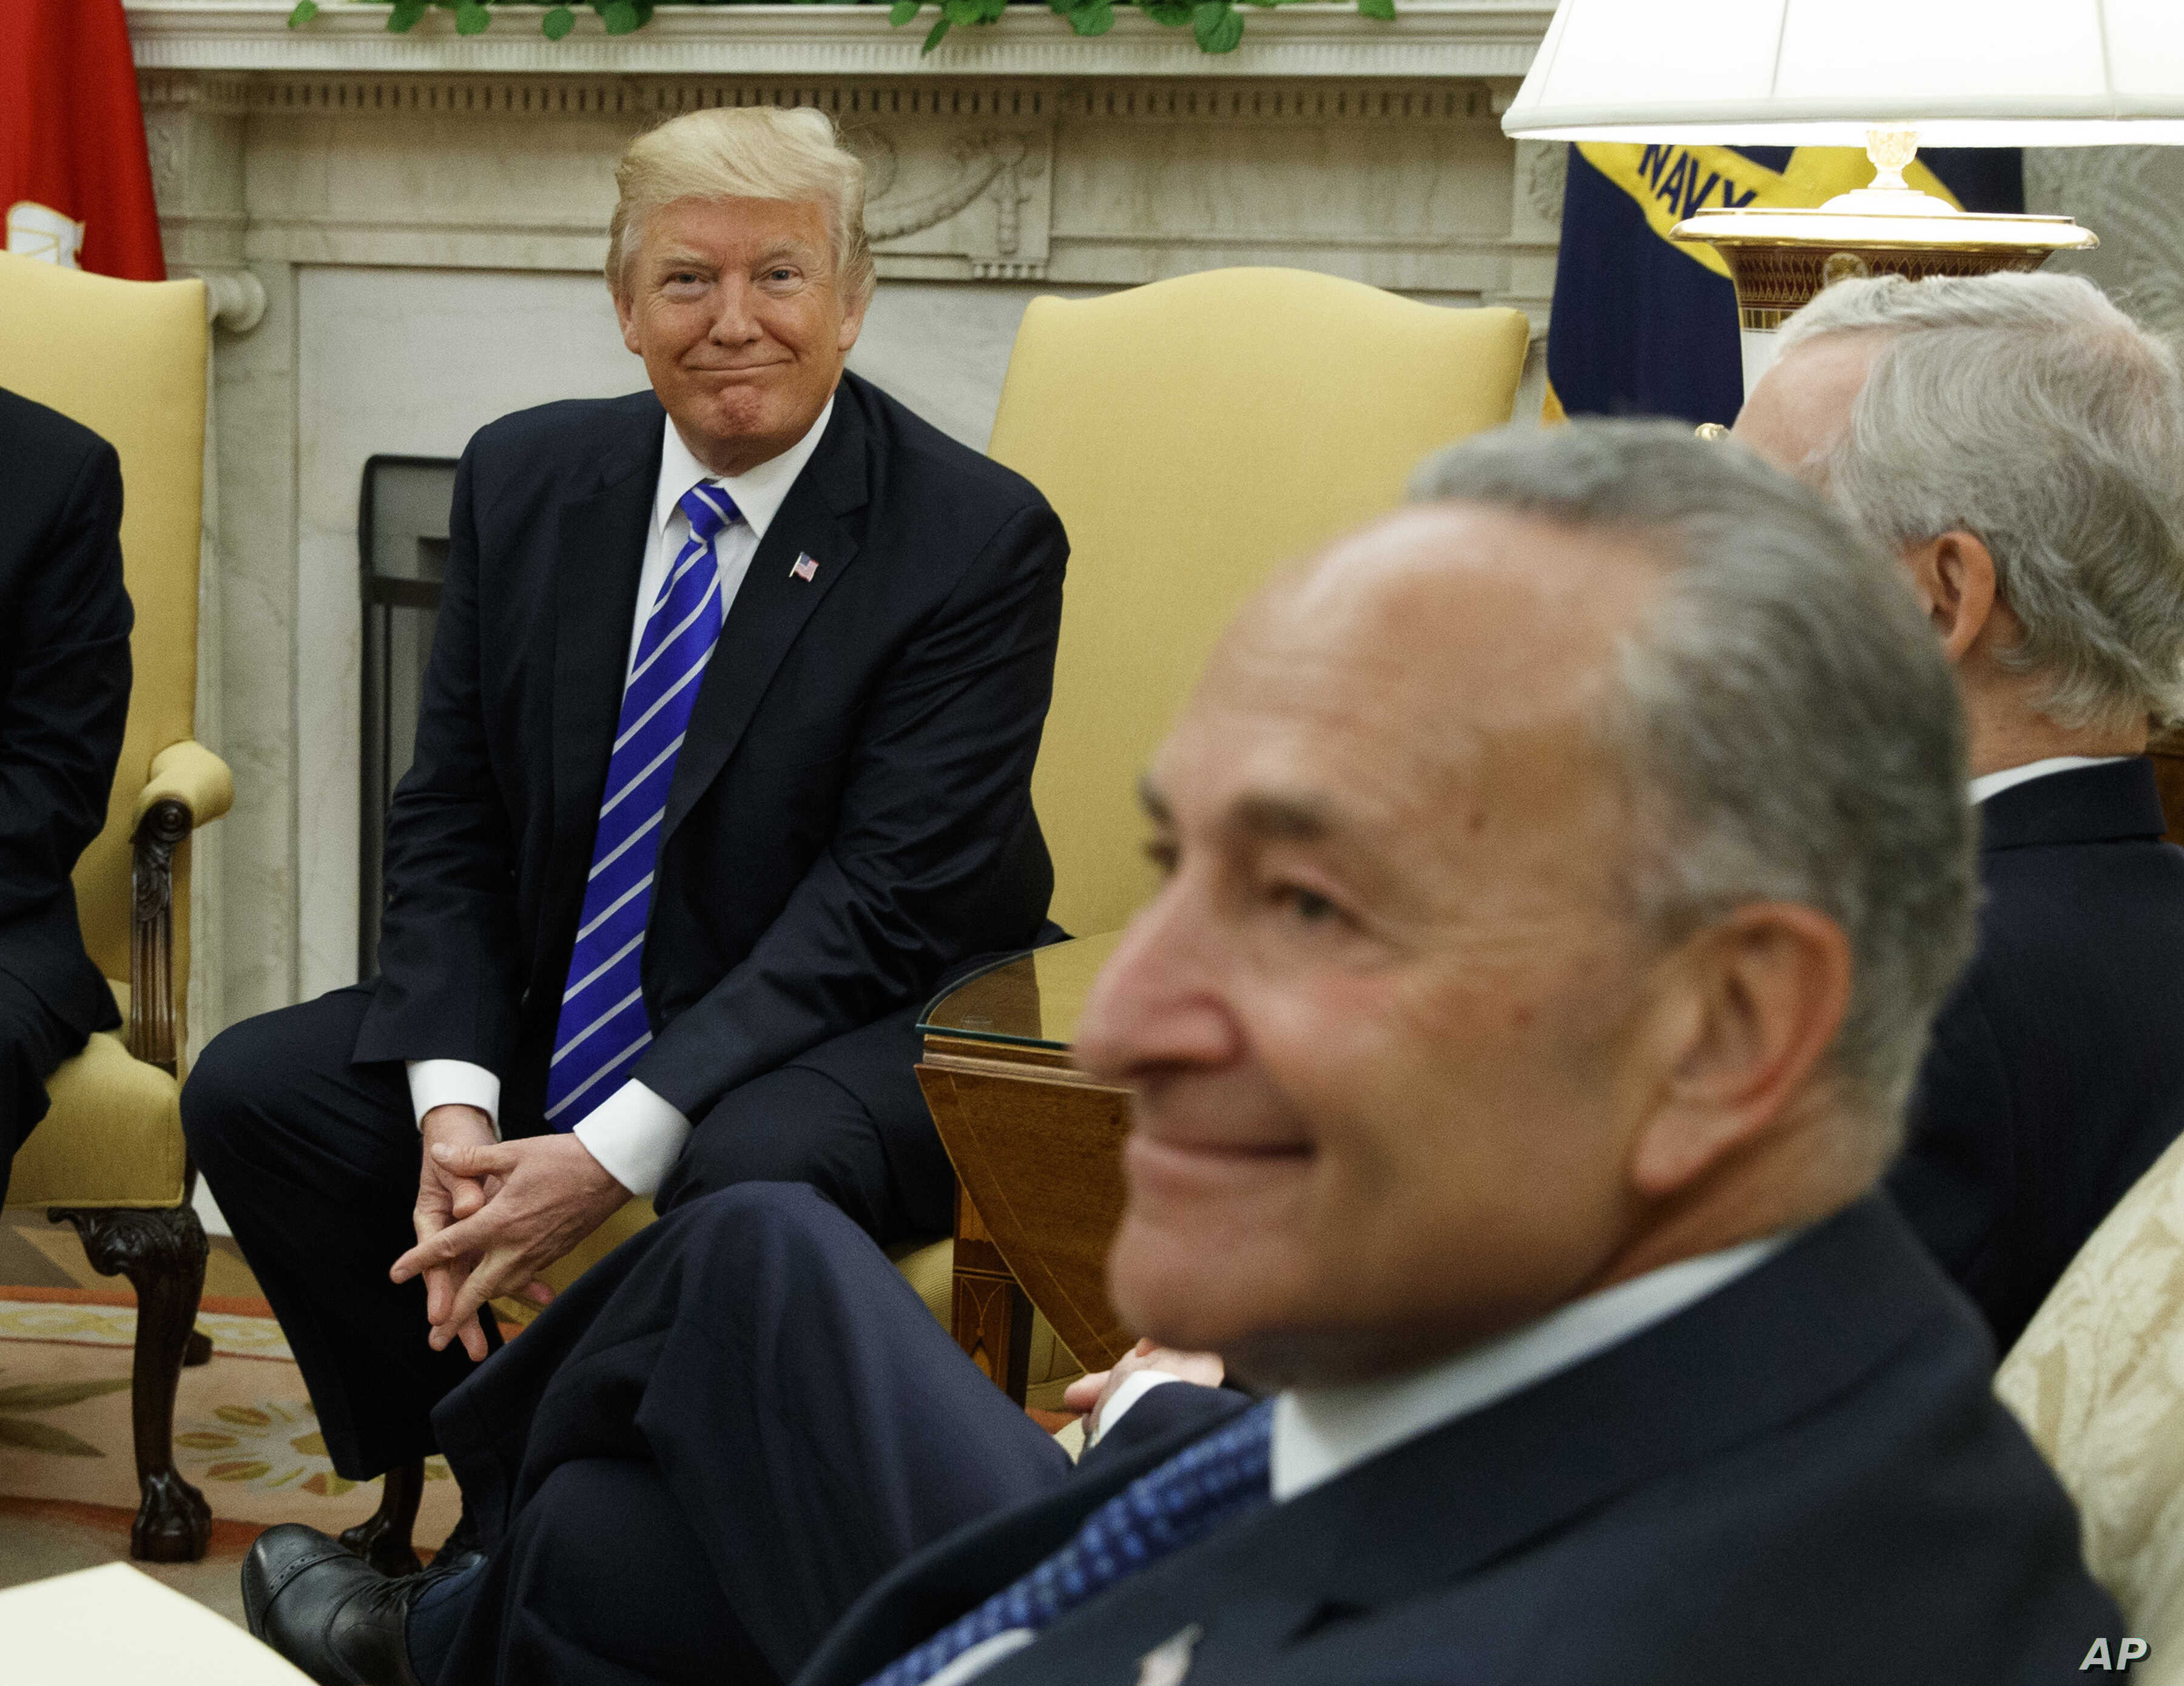 President Donald Trump and Senate Democratic Minority Leader Chuck Schumer are seen during a meeting with  other Congressional leaders in the Oval Office of the White House in Washington, Sept. 6, 2017.